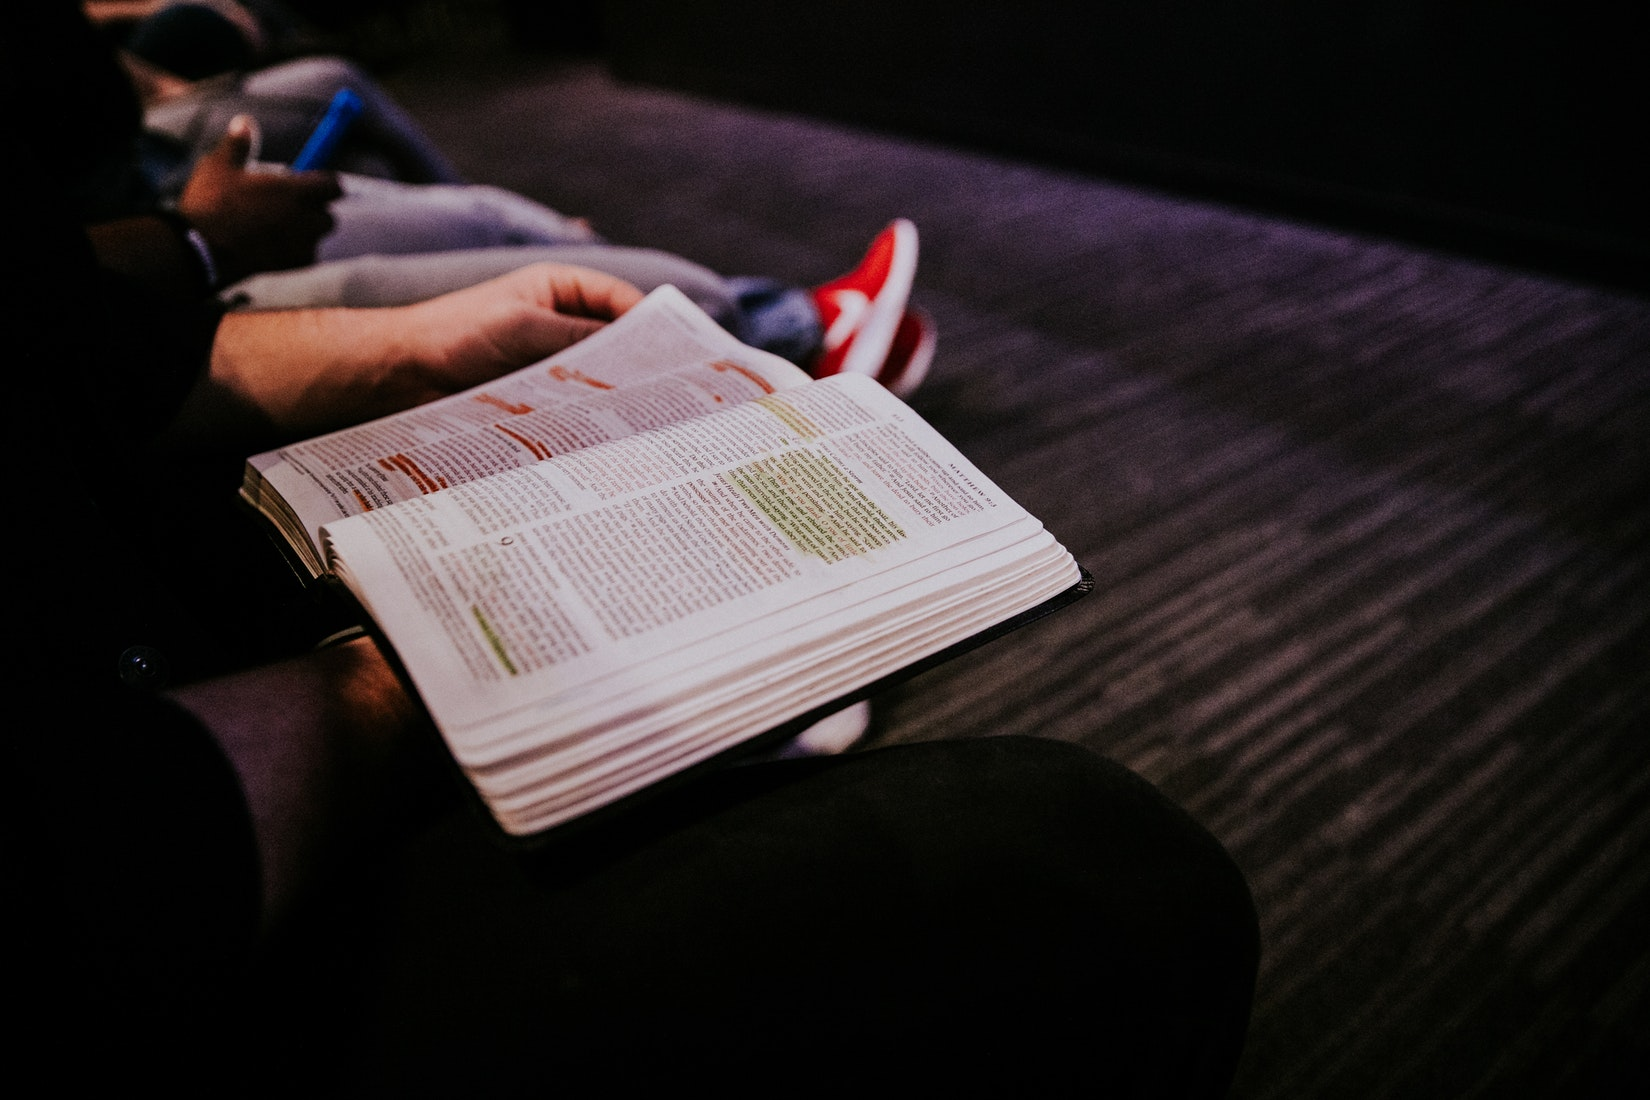 Magazine article reveals need for biblical literacy